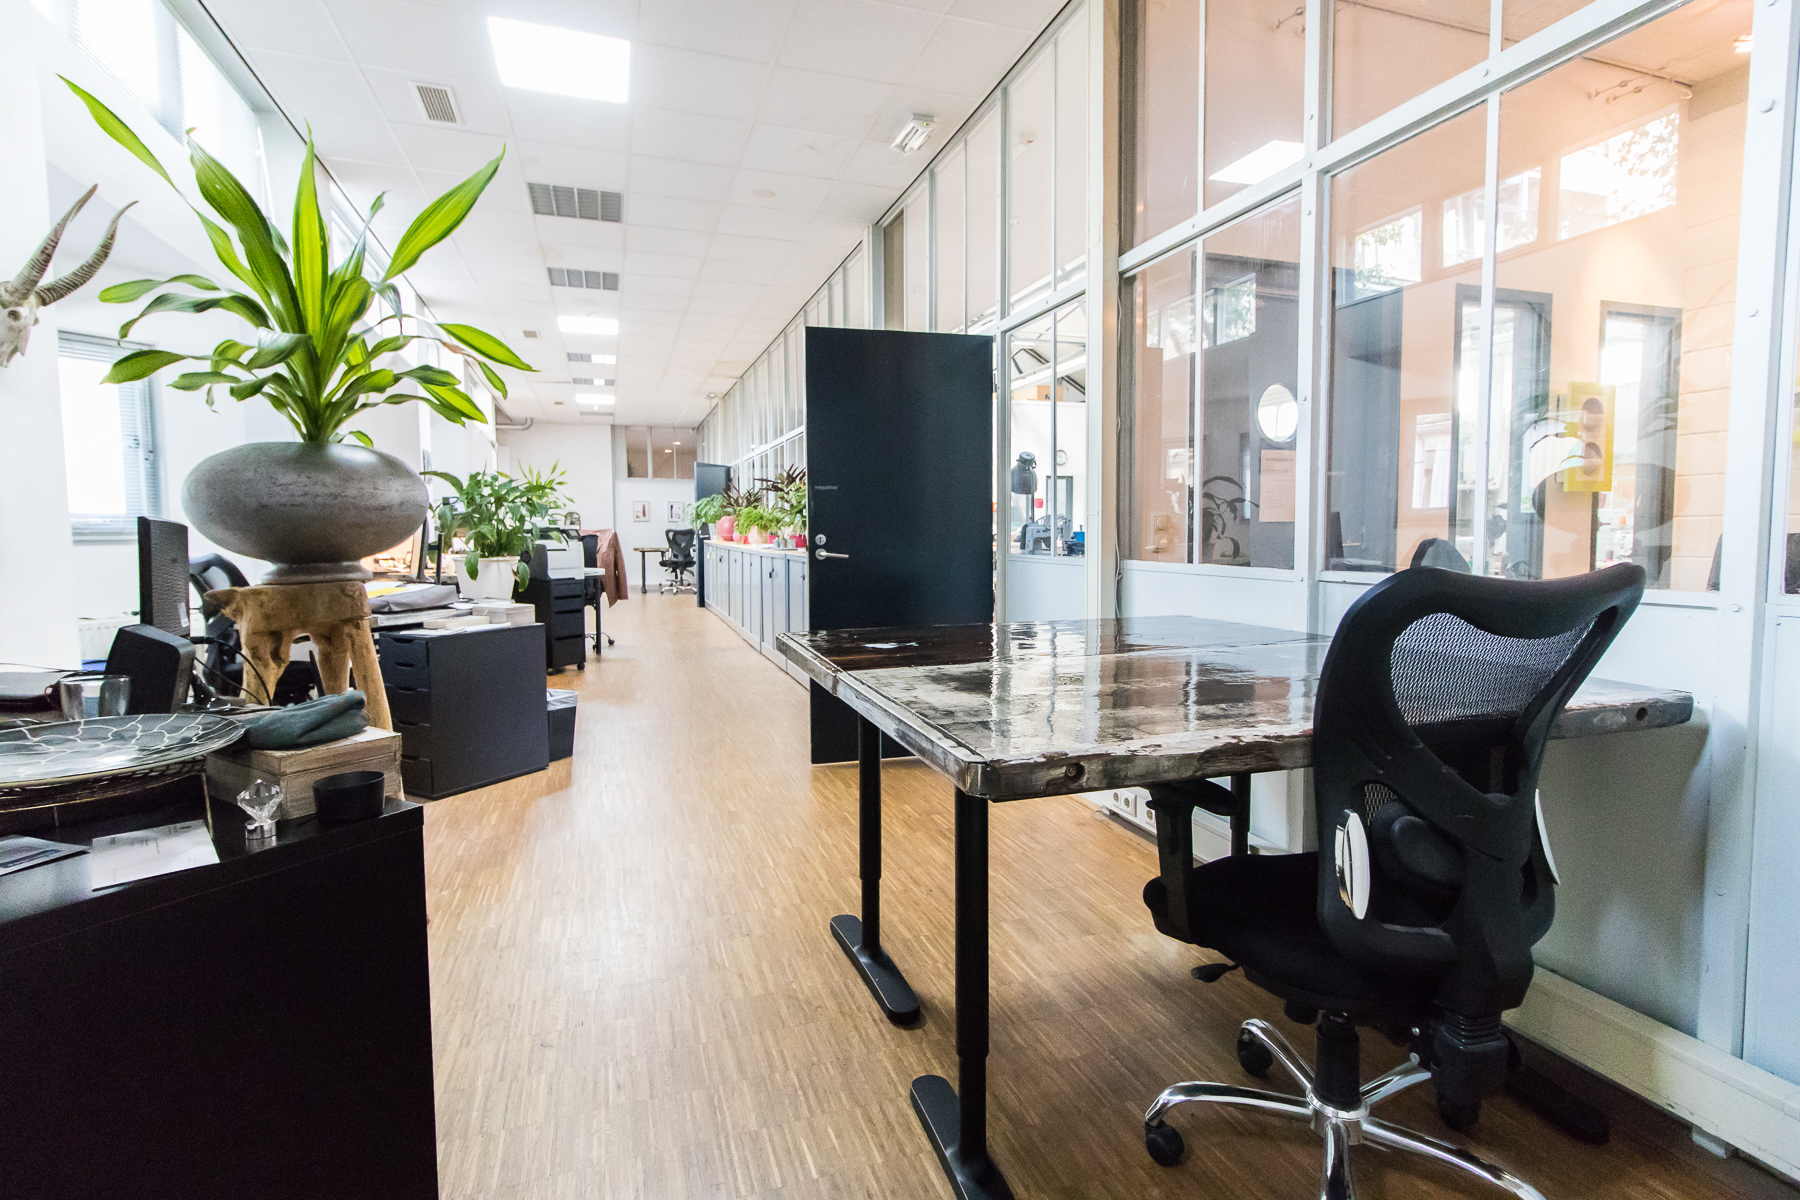 Rent office space Oudeschans 21, Amsterdam (10)